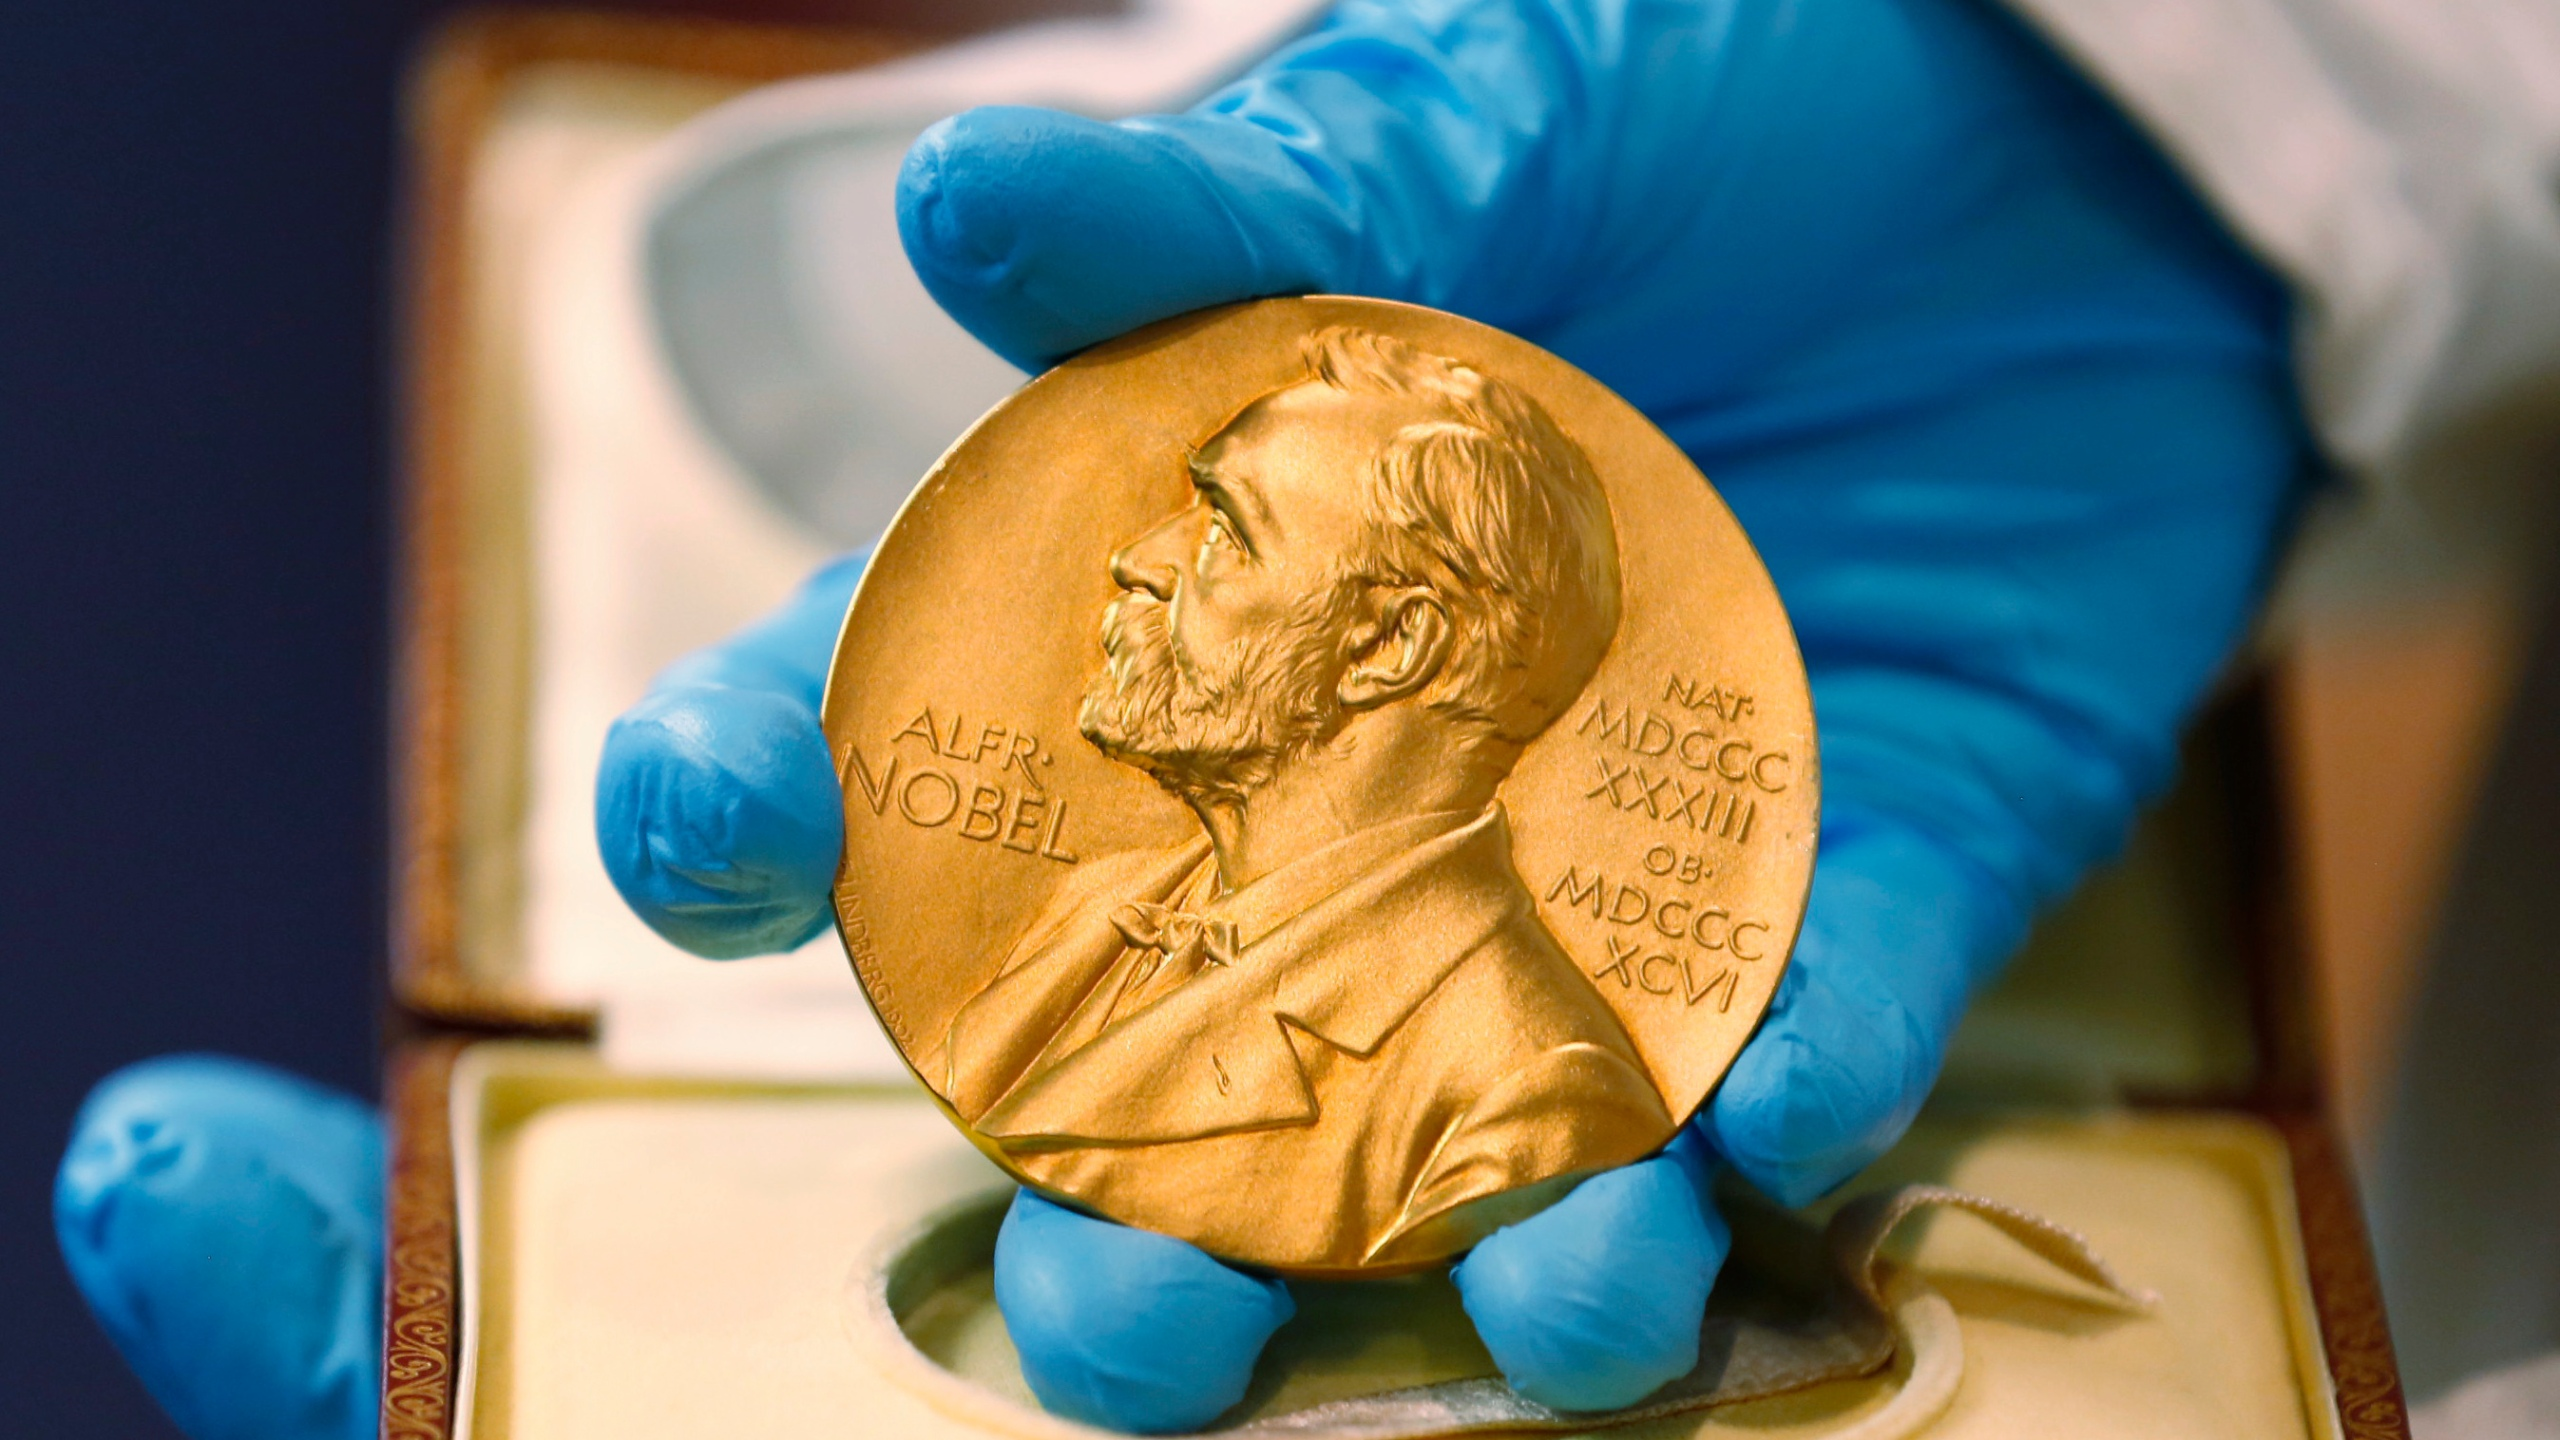 In this April 17, 2015, file photo, a national library employee shows a gold Nobel Prize medal in Bogota, Colombia. (AP Photo/Fernando Vergara, File)